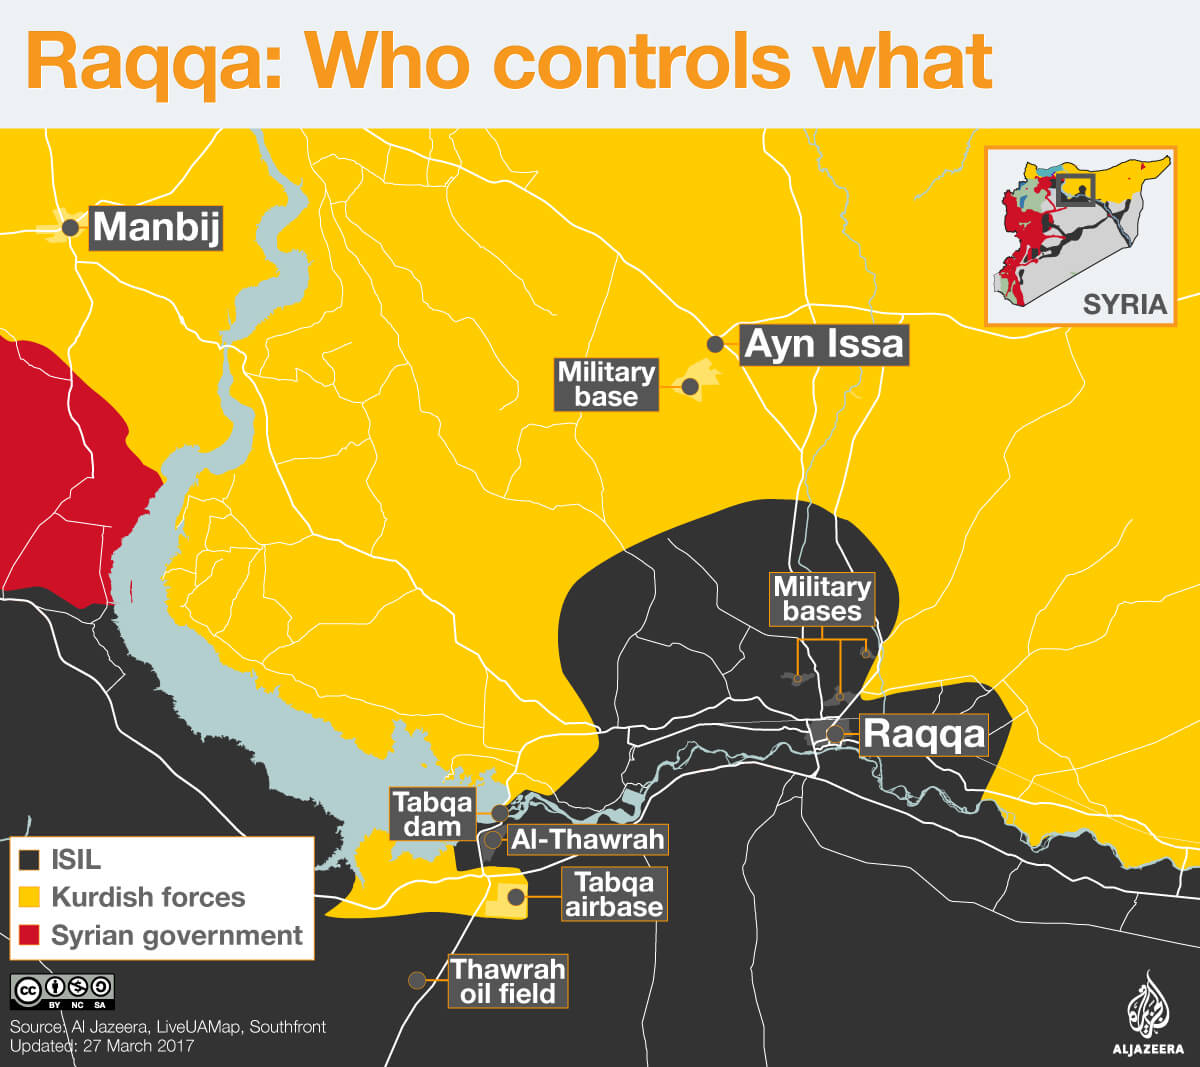 raqqa isis isil who controls what syrian civil war map infographic